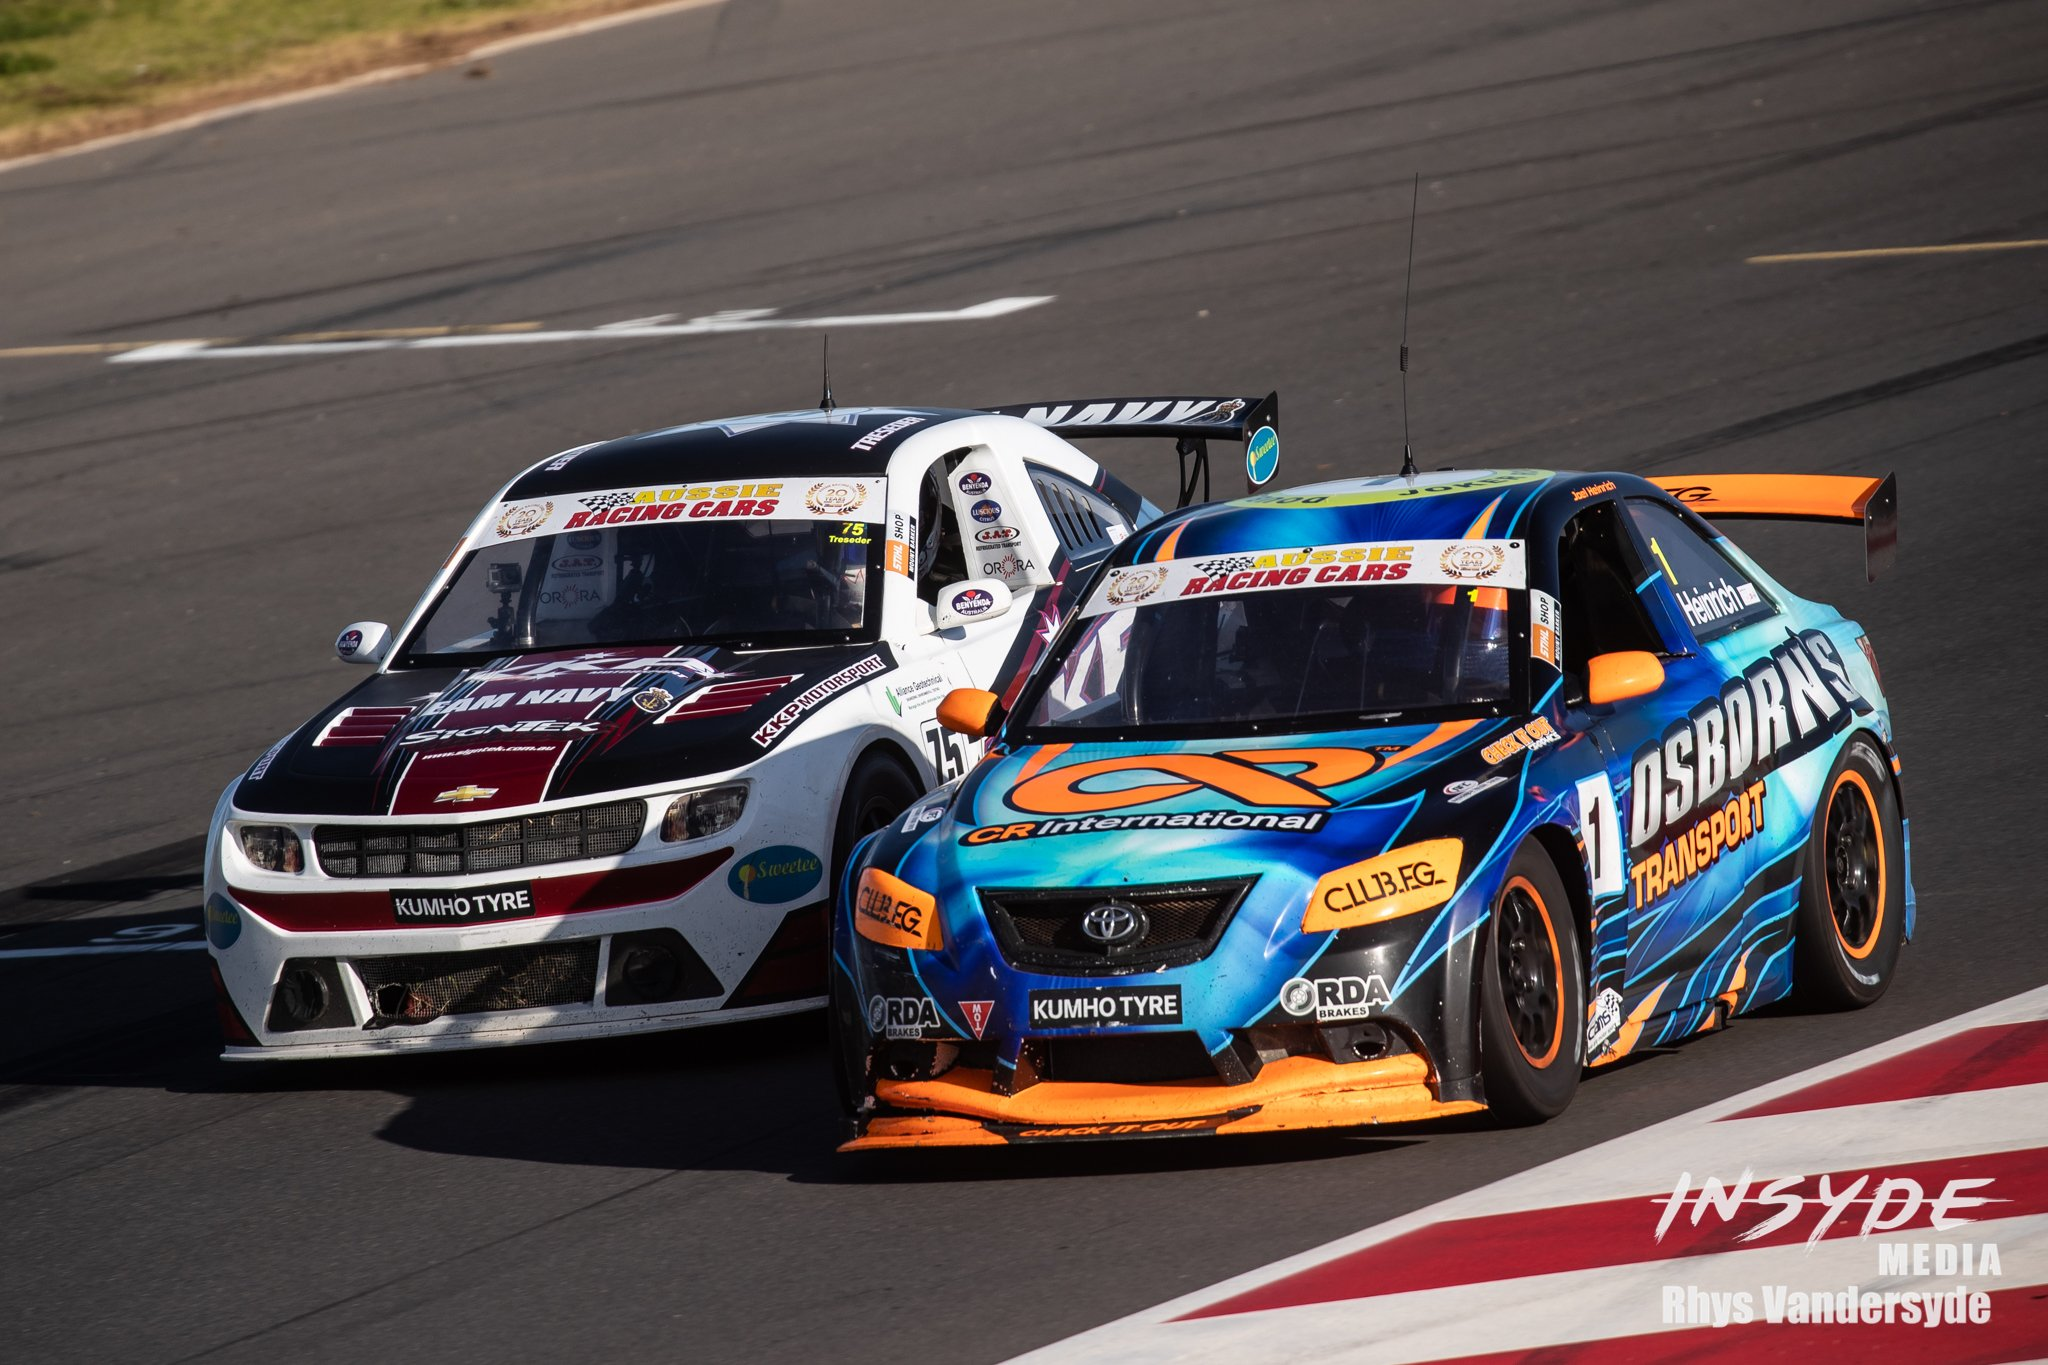 Supercars - The Bend - 2019